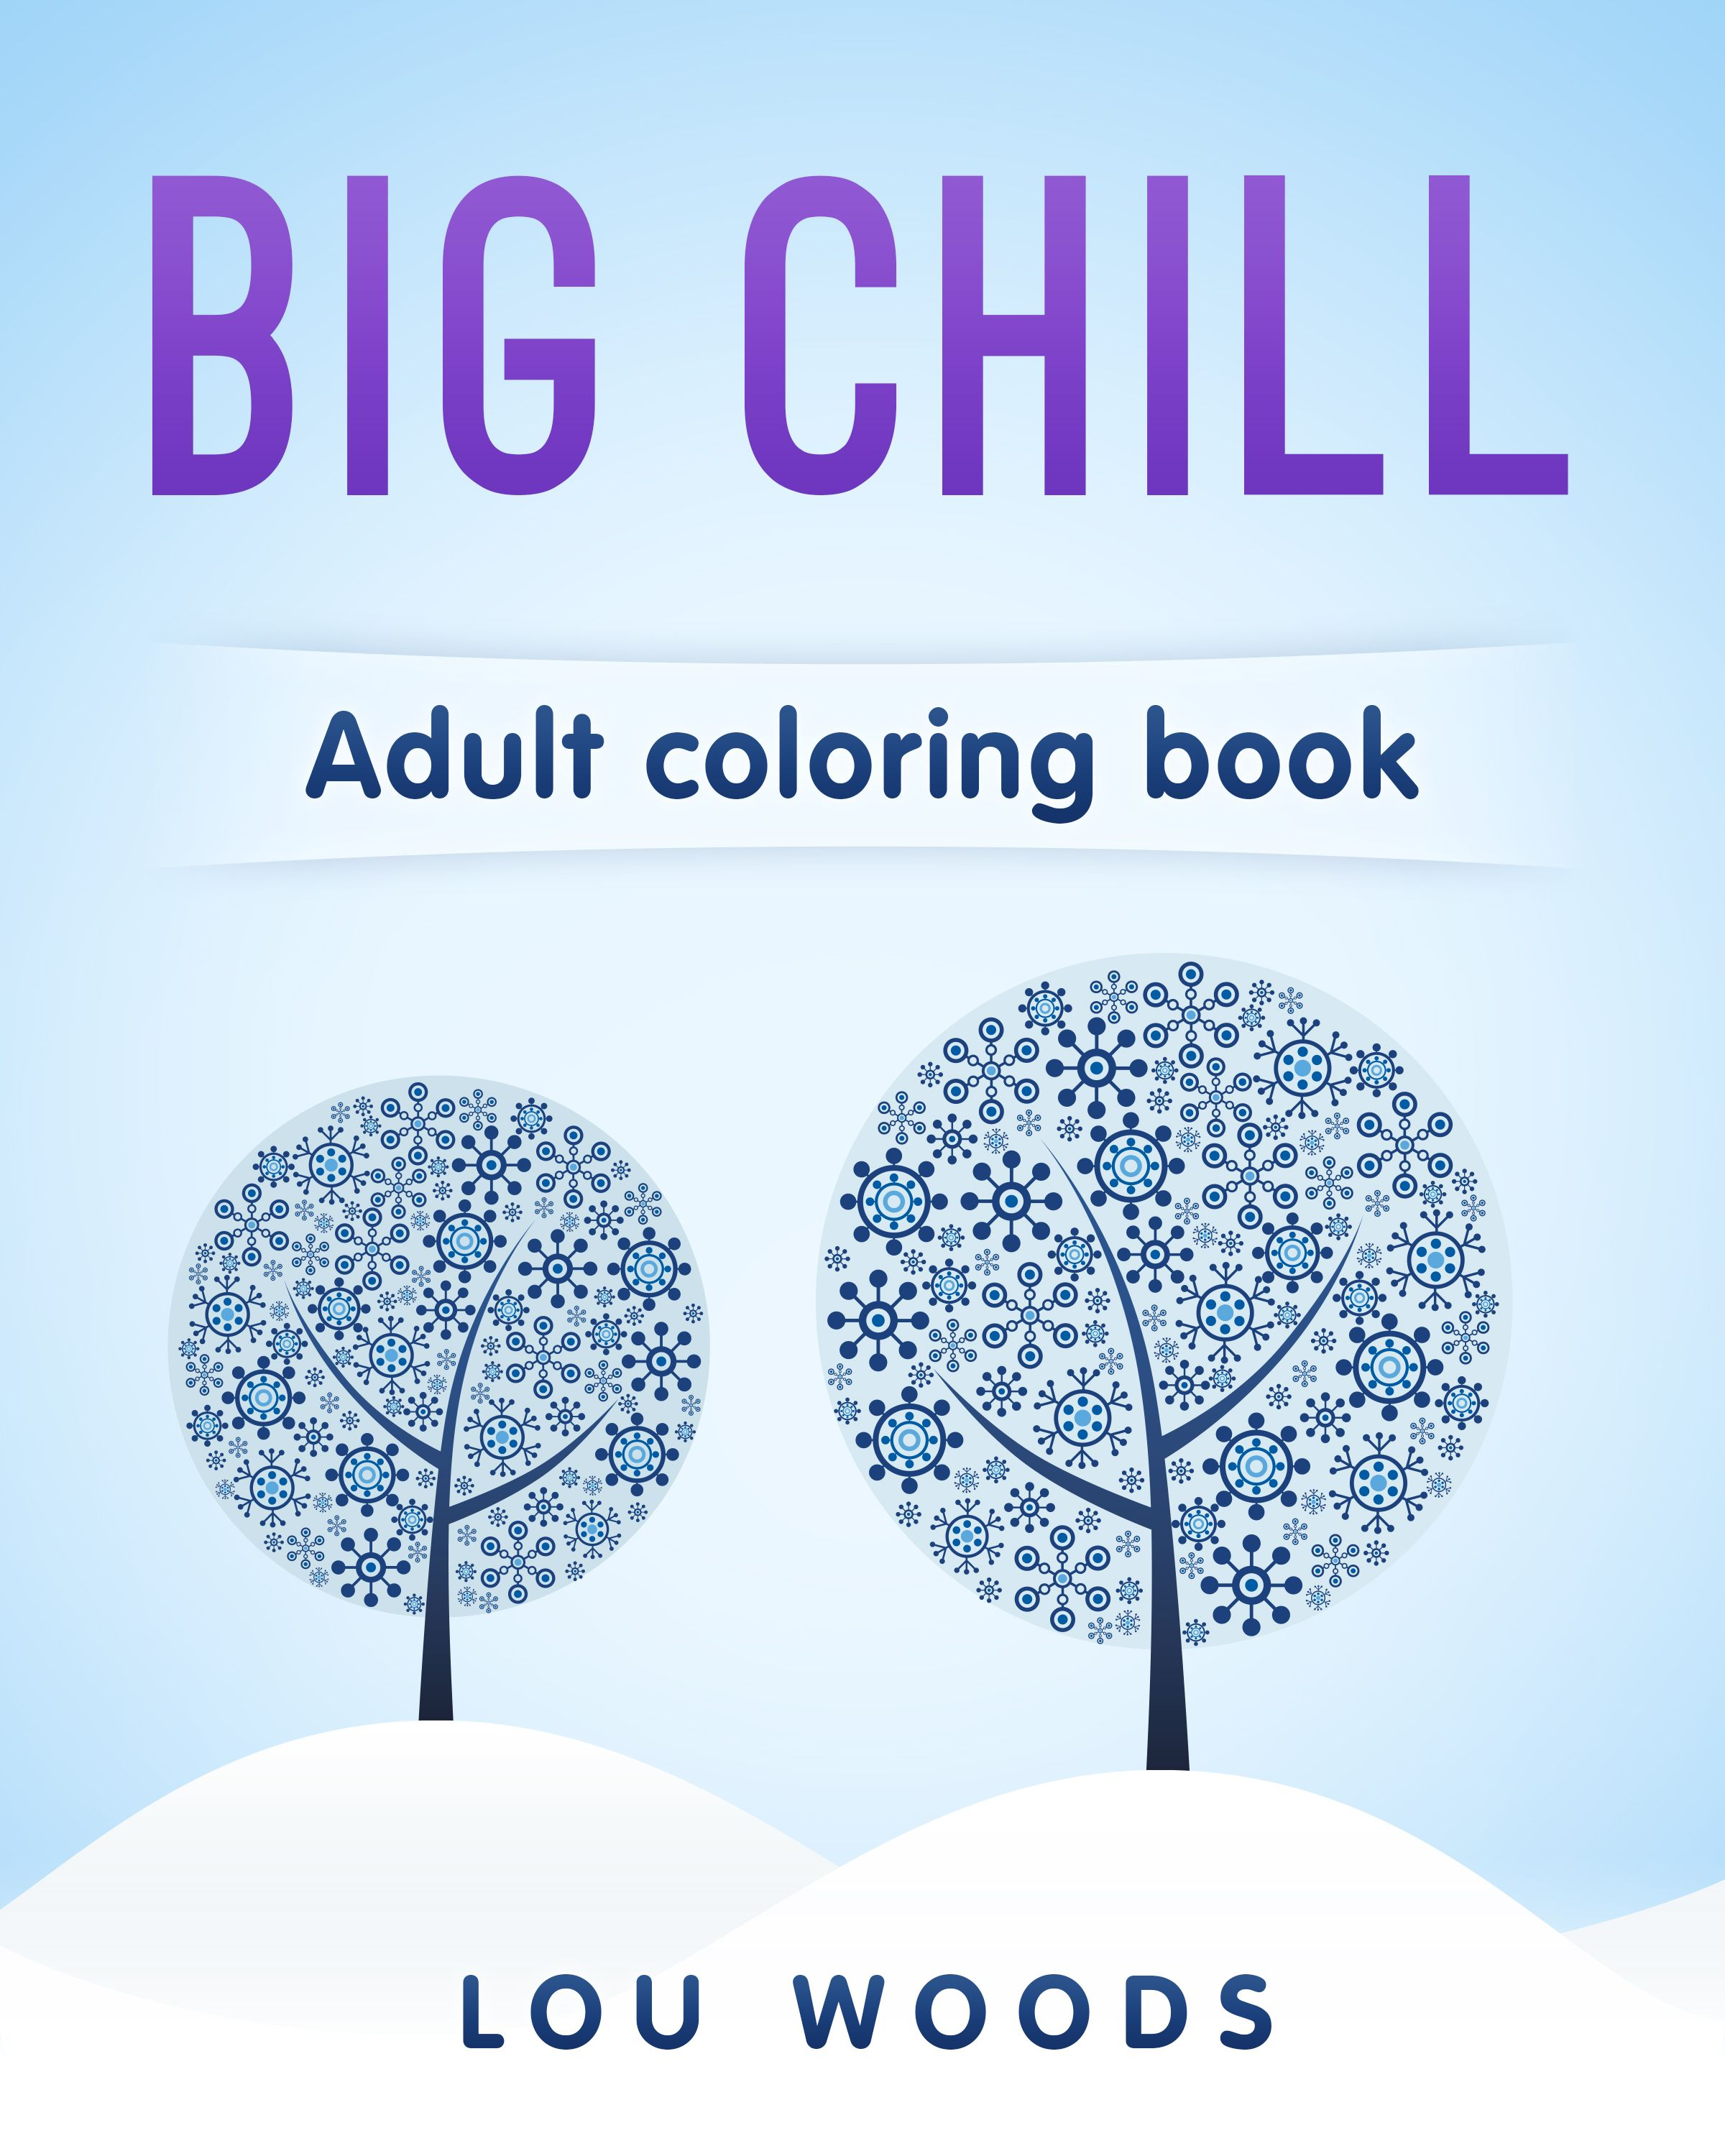 Ready for the cosiest and most relaxing winter ever? In this coloring book you'll find 25 unique, full page designs, from simple to elaborate. Use any coloring pens, pencils or crayons you like – no experience is needed. So rug up and enjoy the benefits of unleashing your imagination and relieve stress. Relax and unwind and make the indoor season fly as you develop your own artwork, in your way.